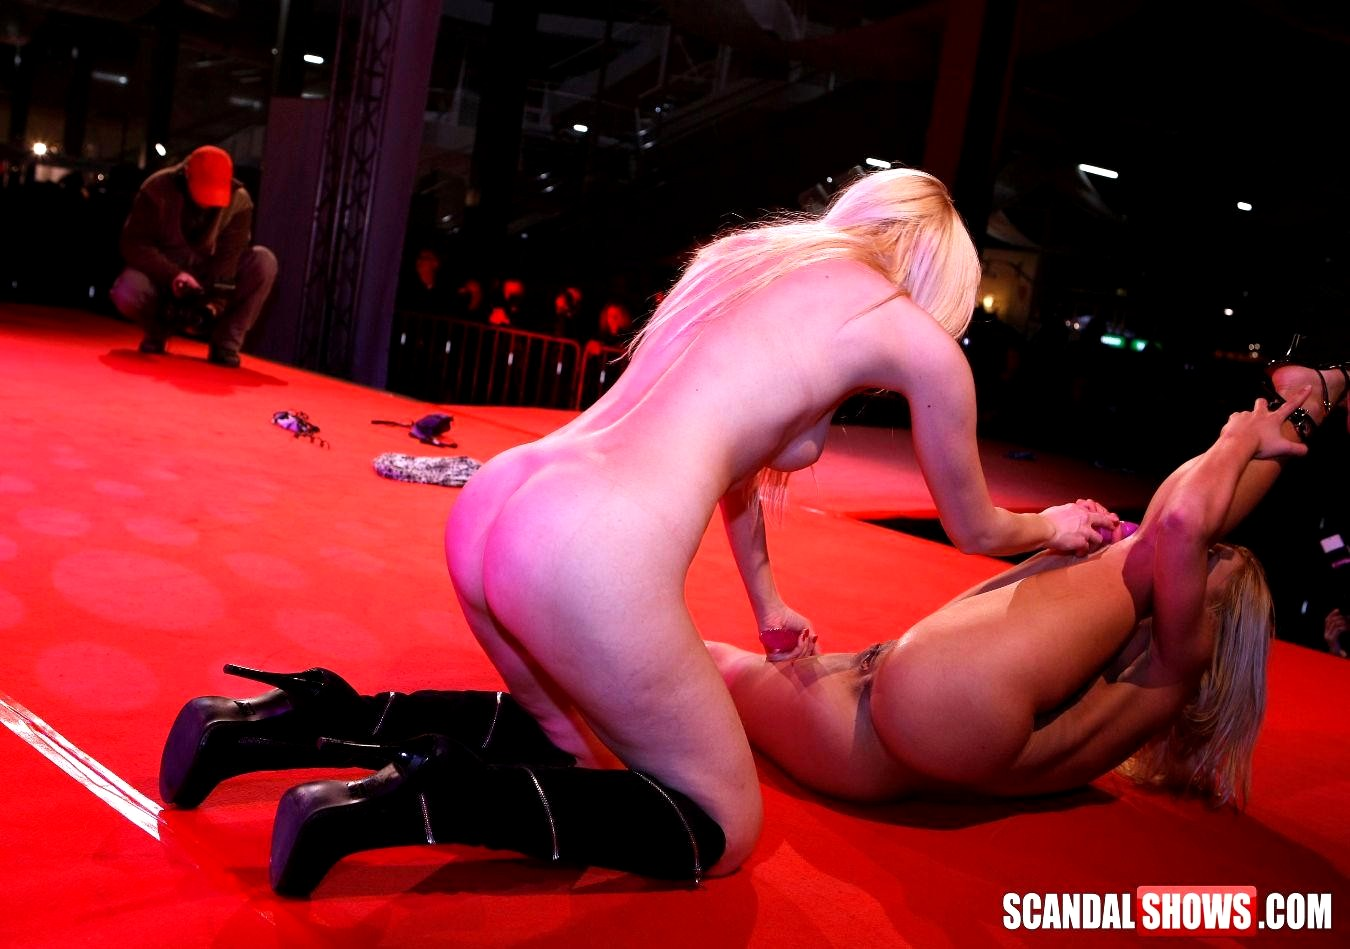 The act sex show, girls with hooks in there asses vary painfull